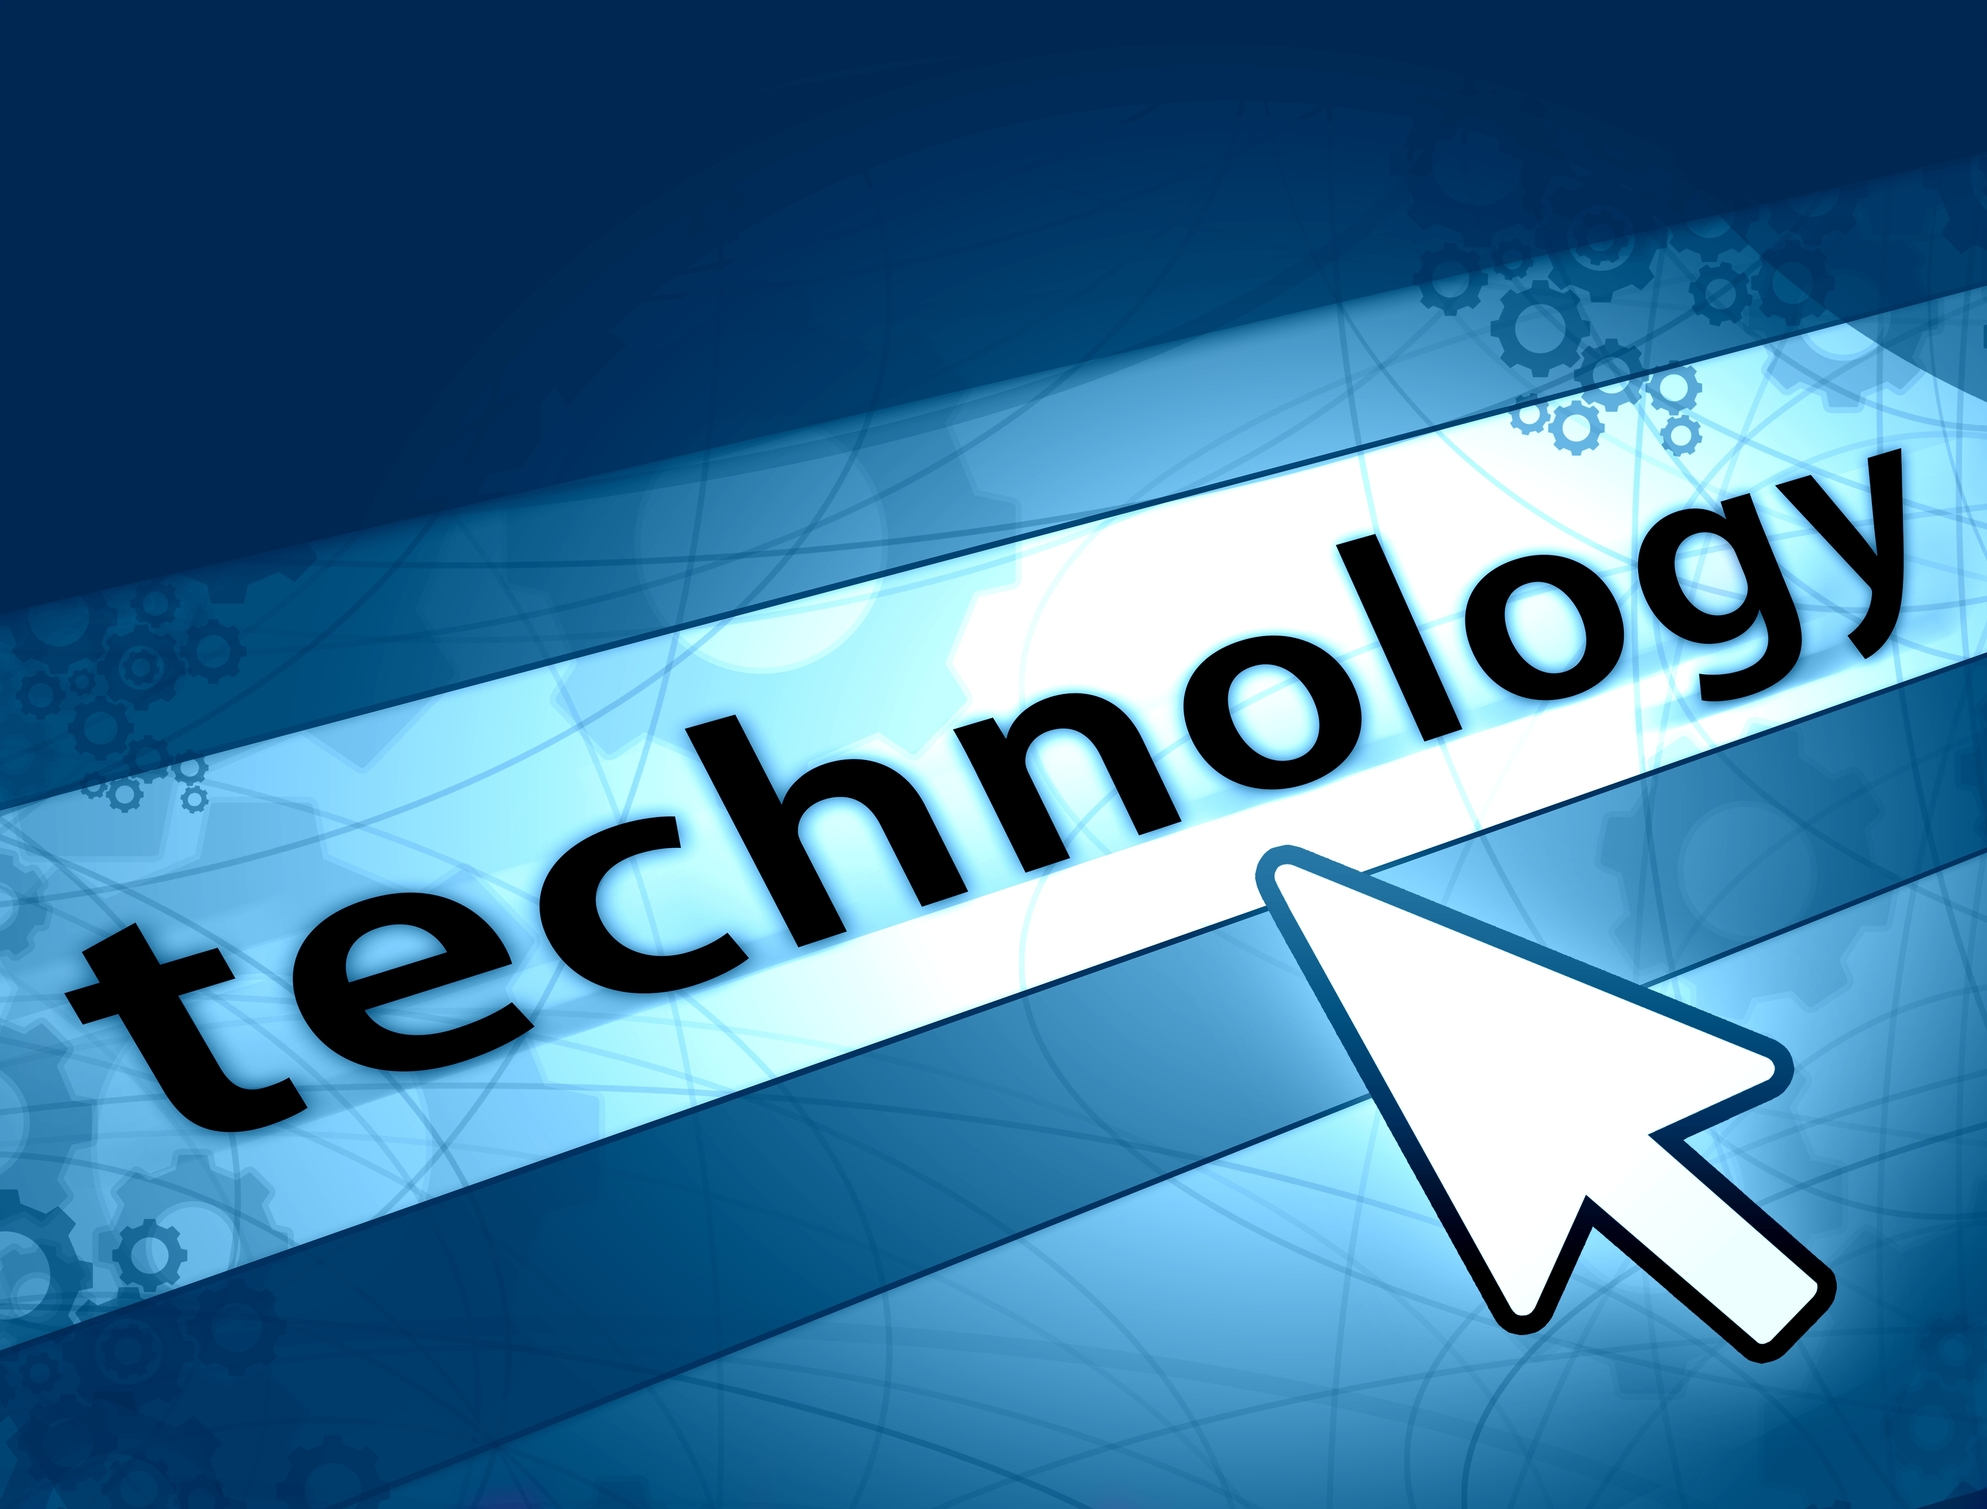 Online medical billing classes leverage technology for your gain